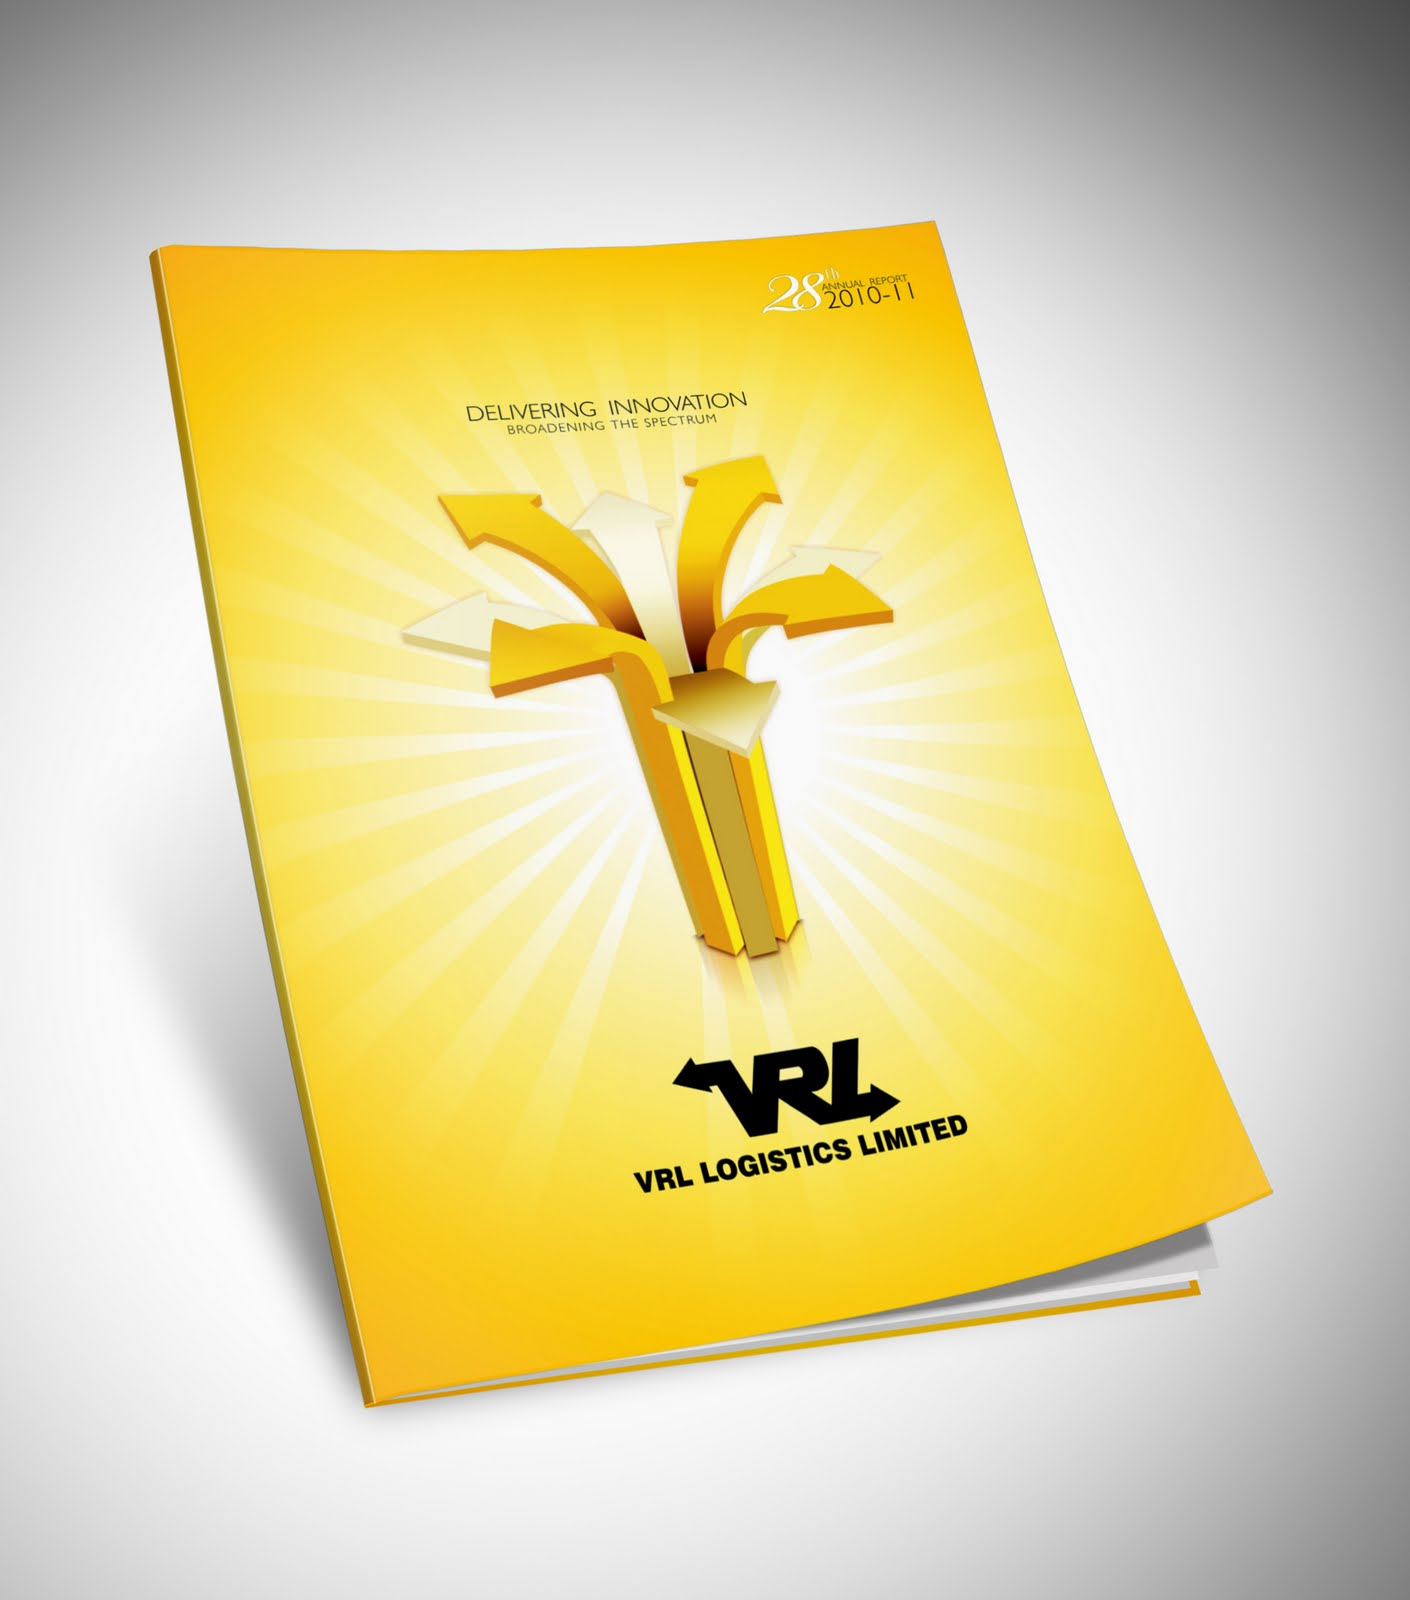 coverpage design for vrl annual report balcony ticket coverpage design for vrl annual report